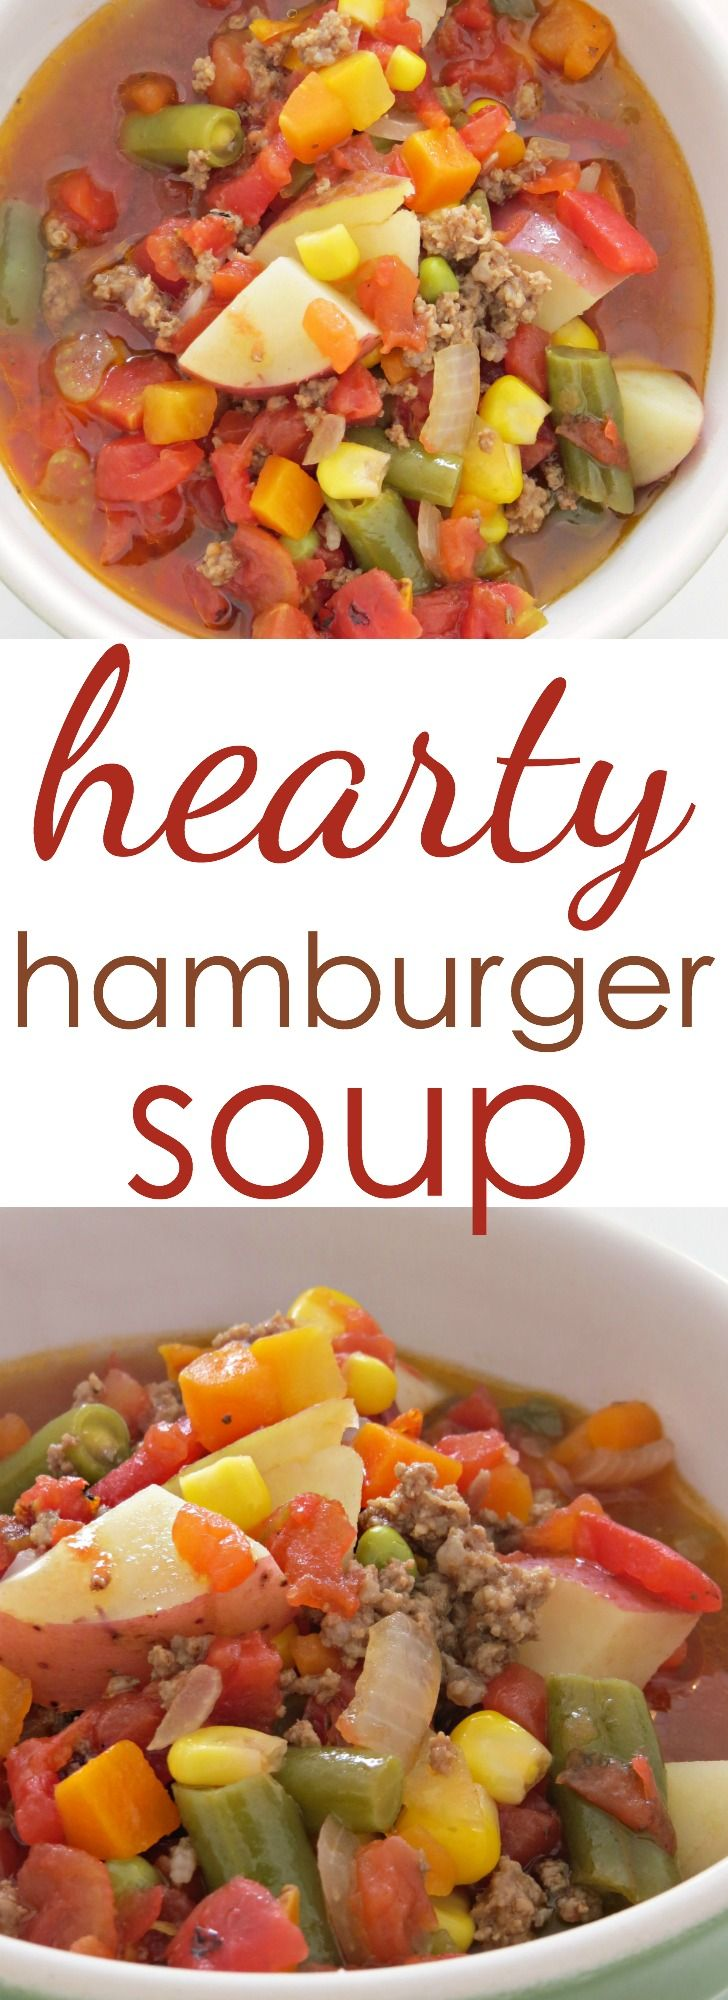 Easy Soup Recipe: Try this hearty hamburger soup for supper tonight. It's filled with vegetables and ground beef, and loaded with flavor. (Paleo Soup Recipes)